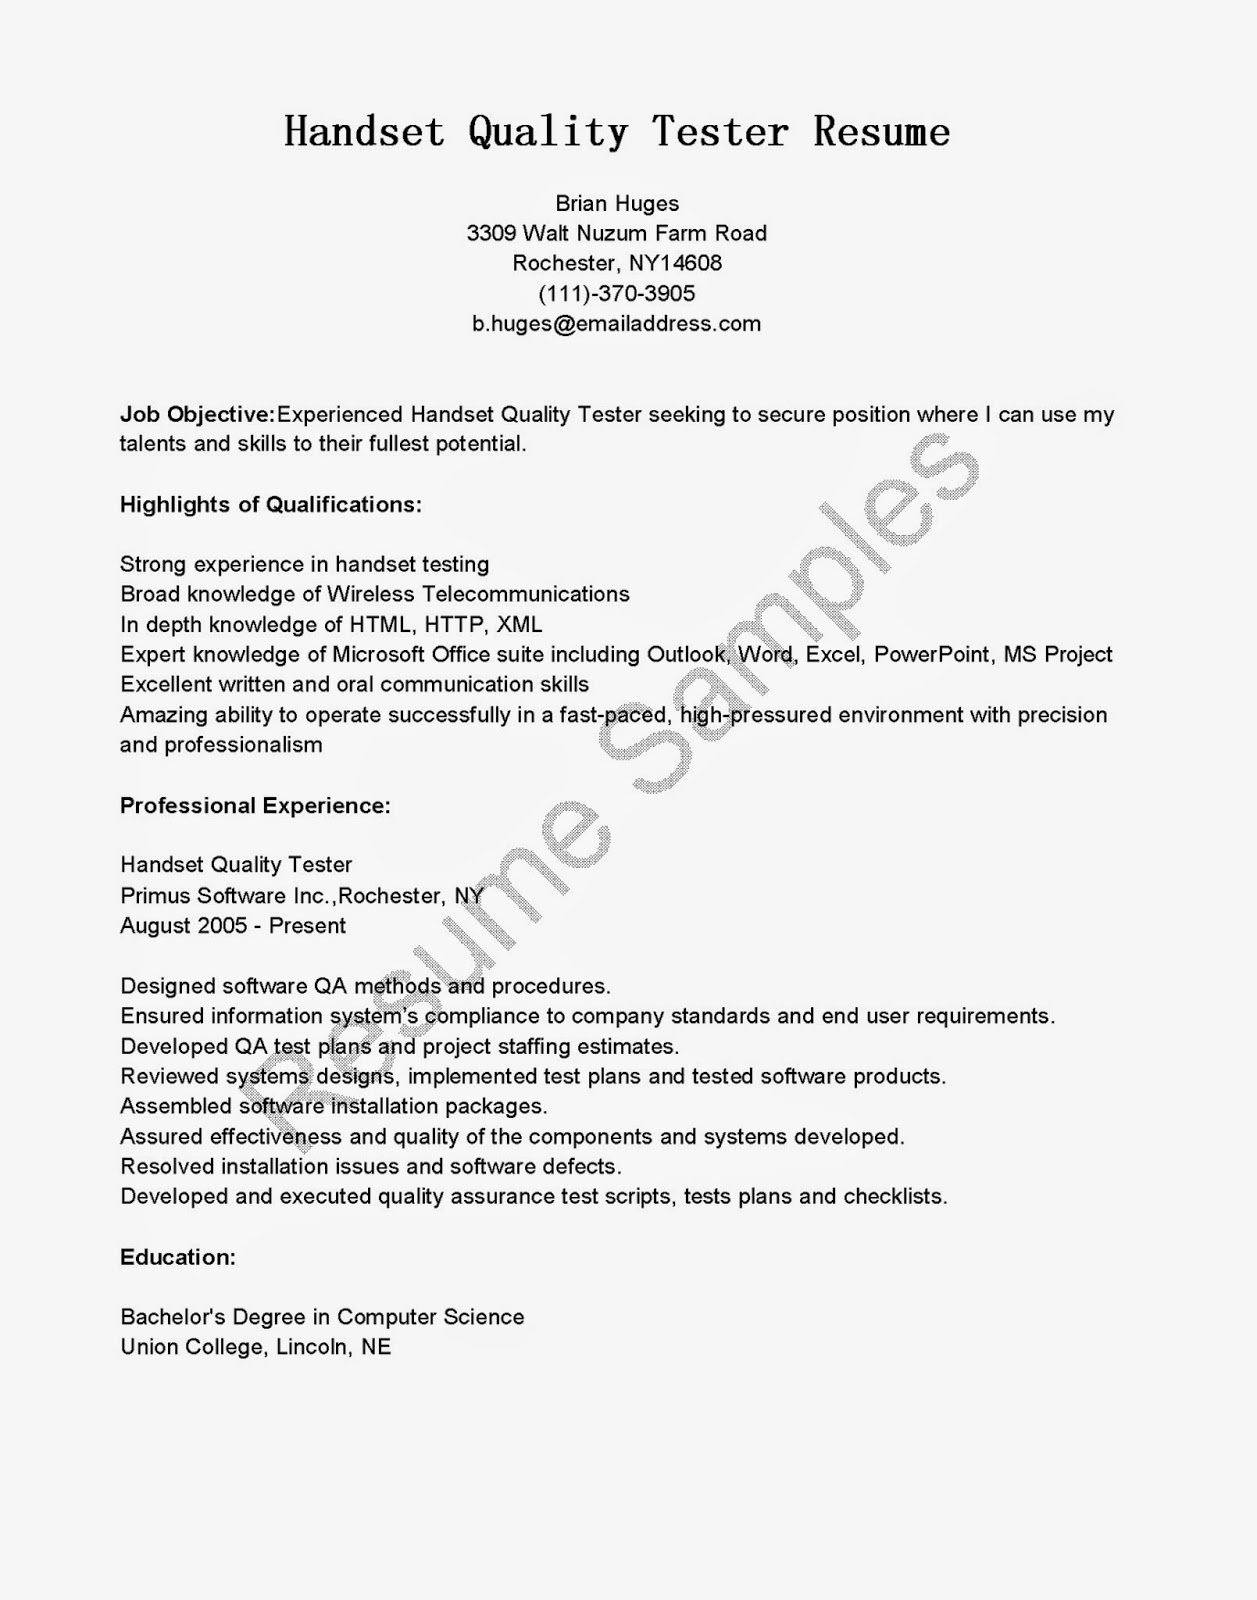 hvac inspector qc resume sample quality assurance technician qc resume - Software Tester Resume Sample